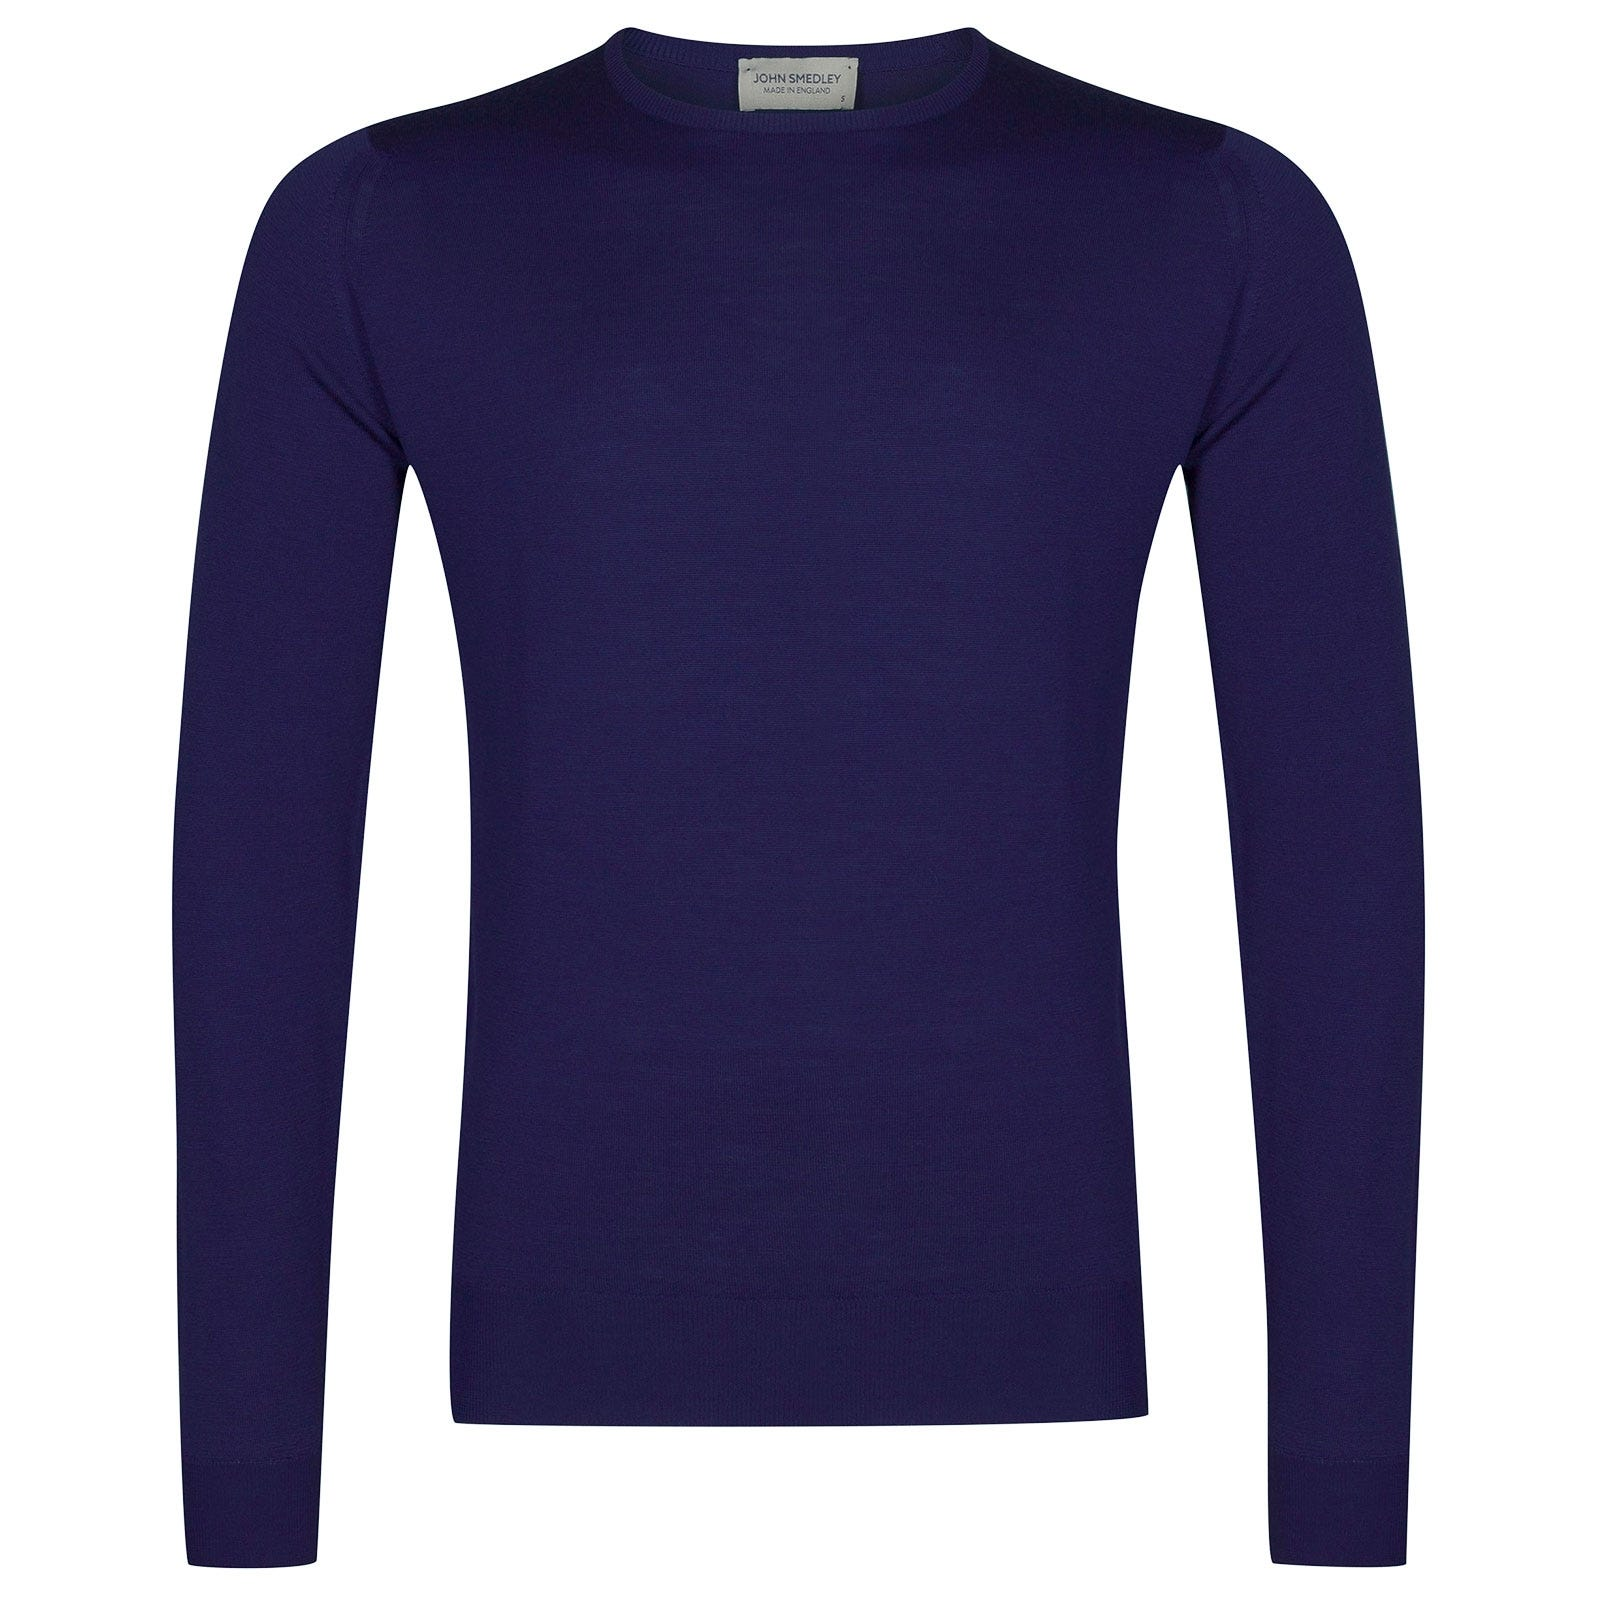 John Smedley Lundy Merino Wool Pullover in Serge Blue-XL